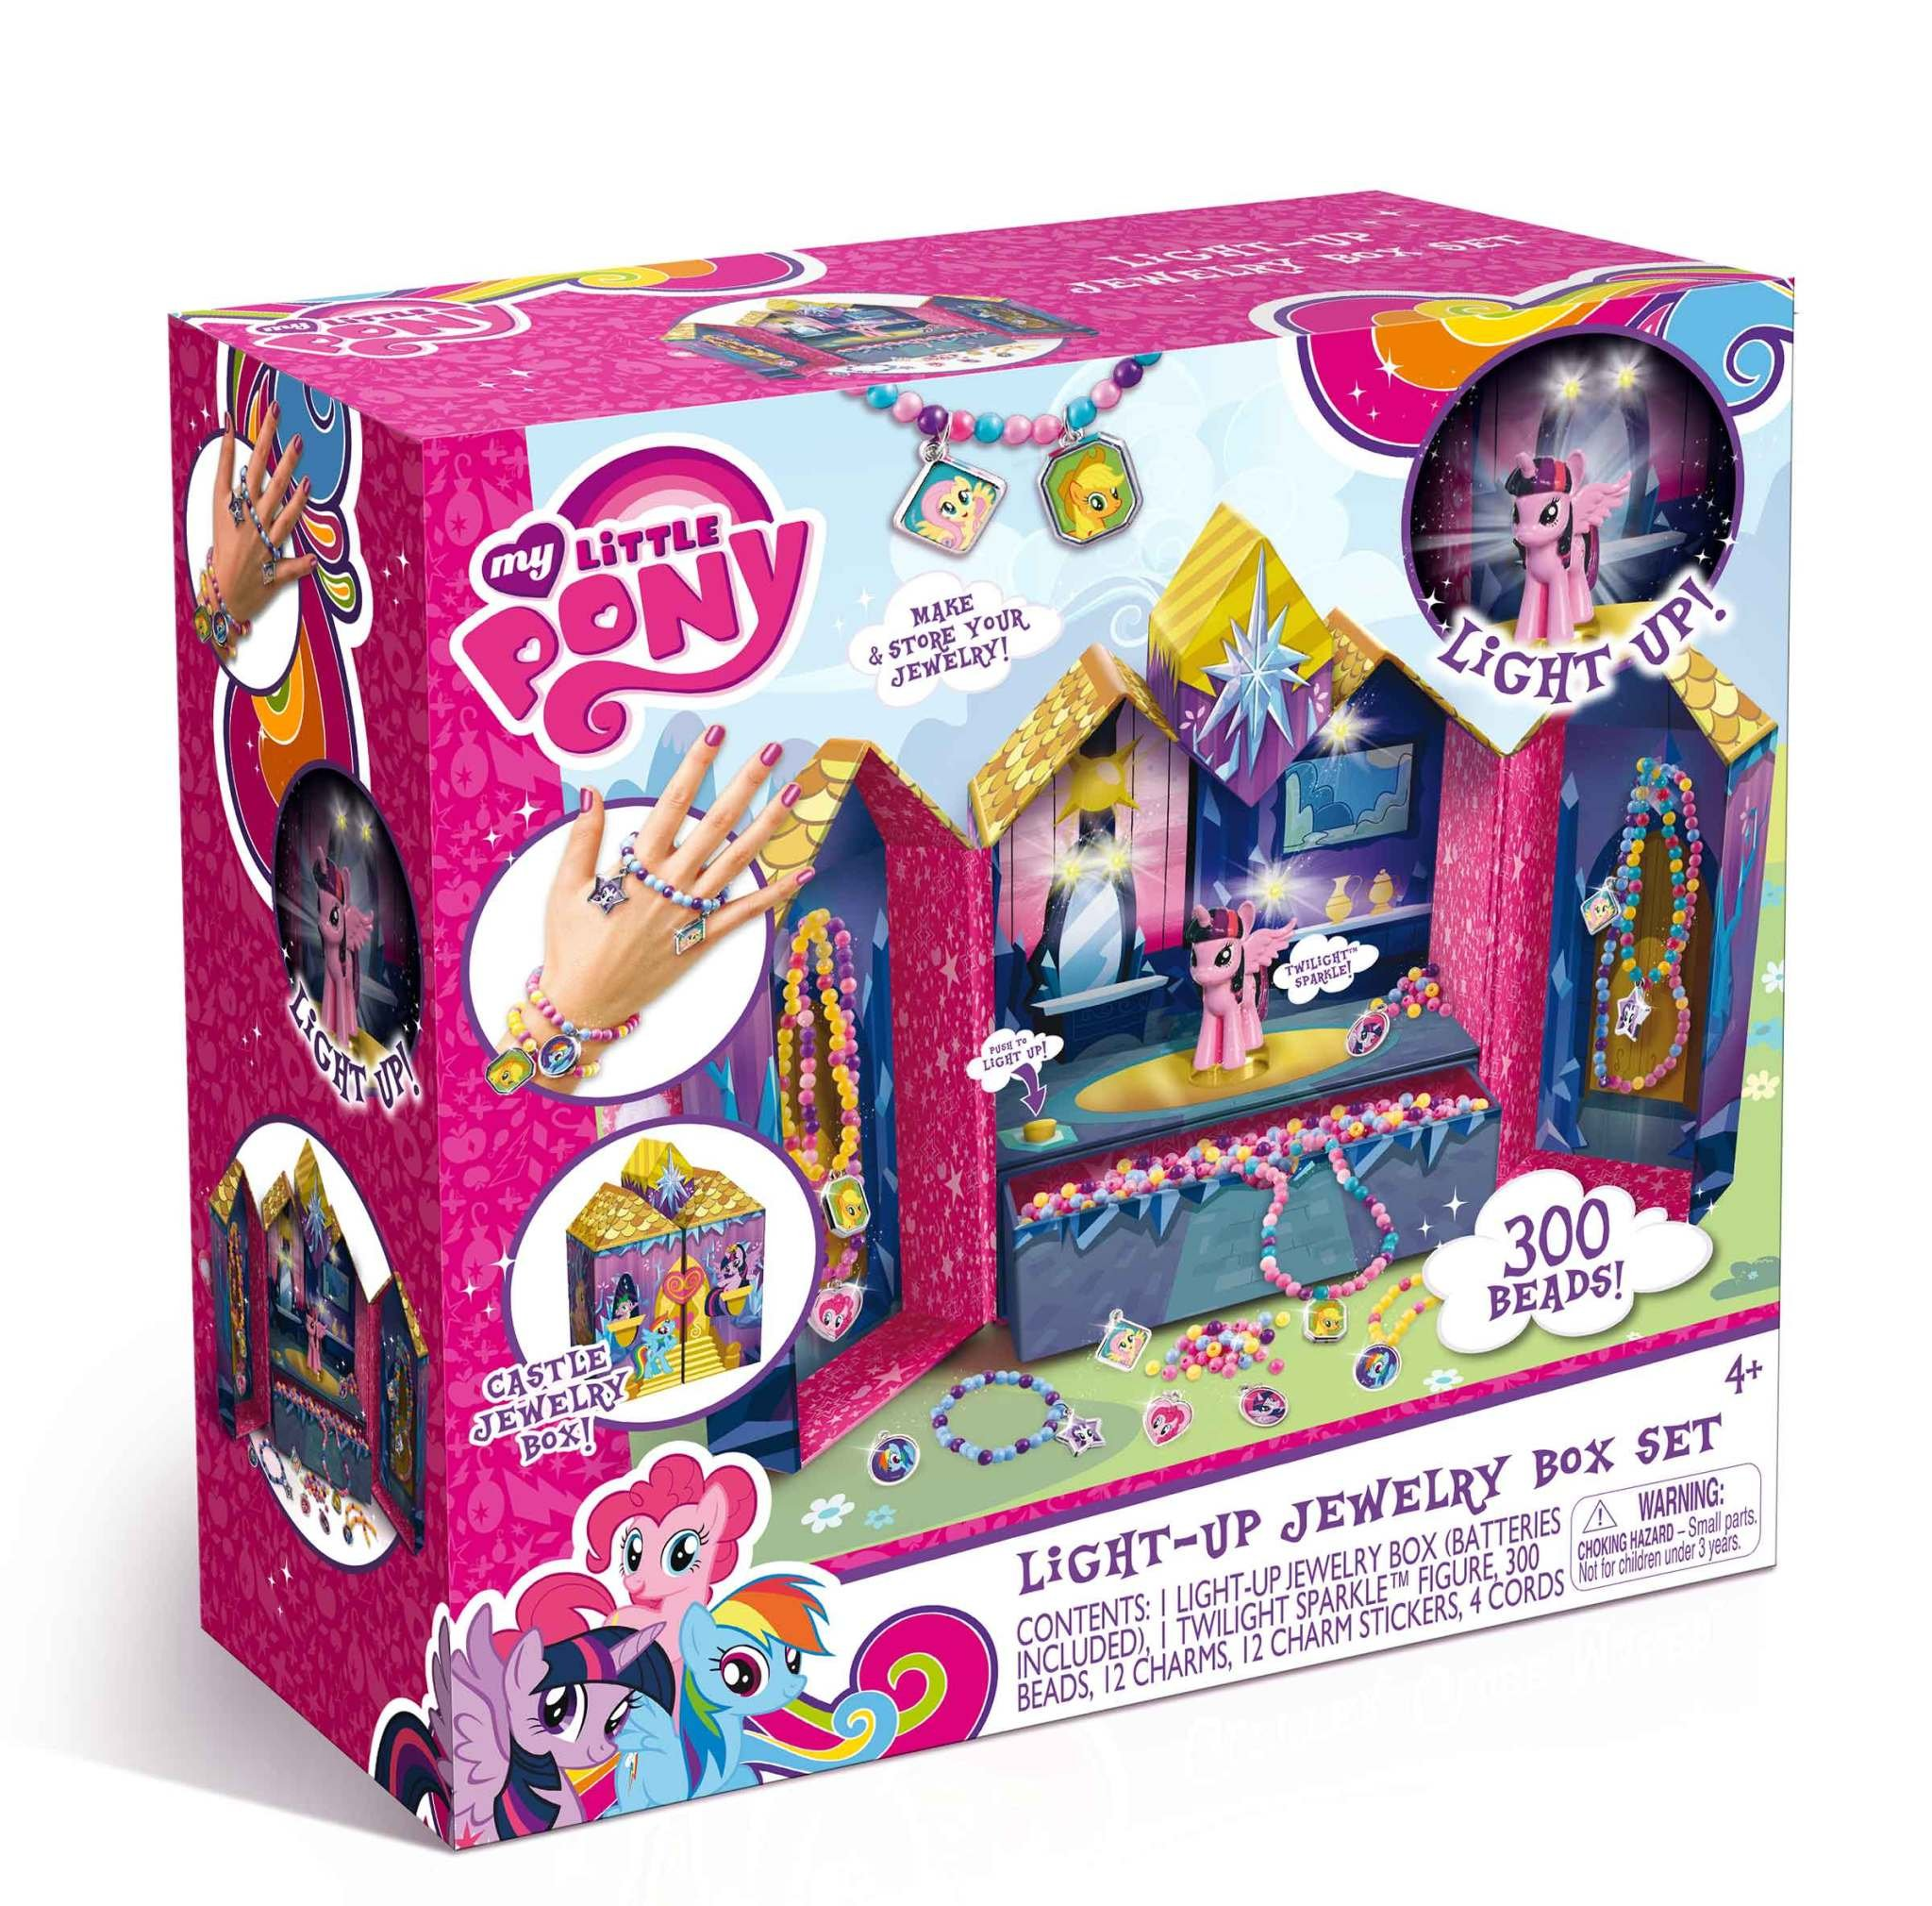 My Little Pony Light-Up Castle Jewelry Box Set - Make and Store Your jewelry, Perfect For Holding Beeds and Charms (300 Beads)